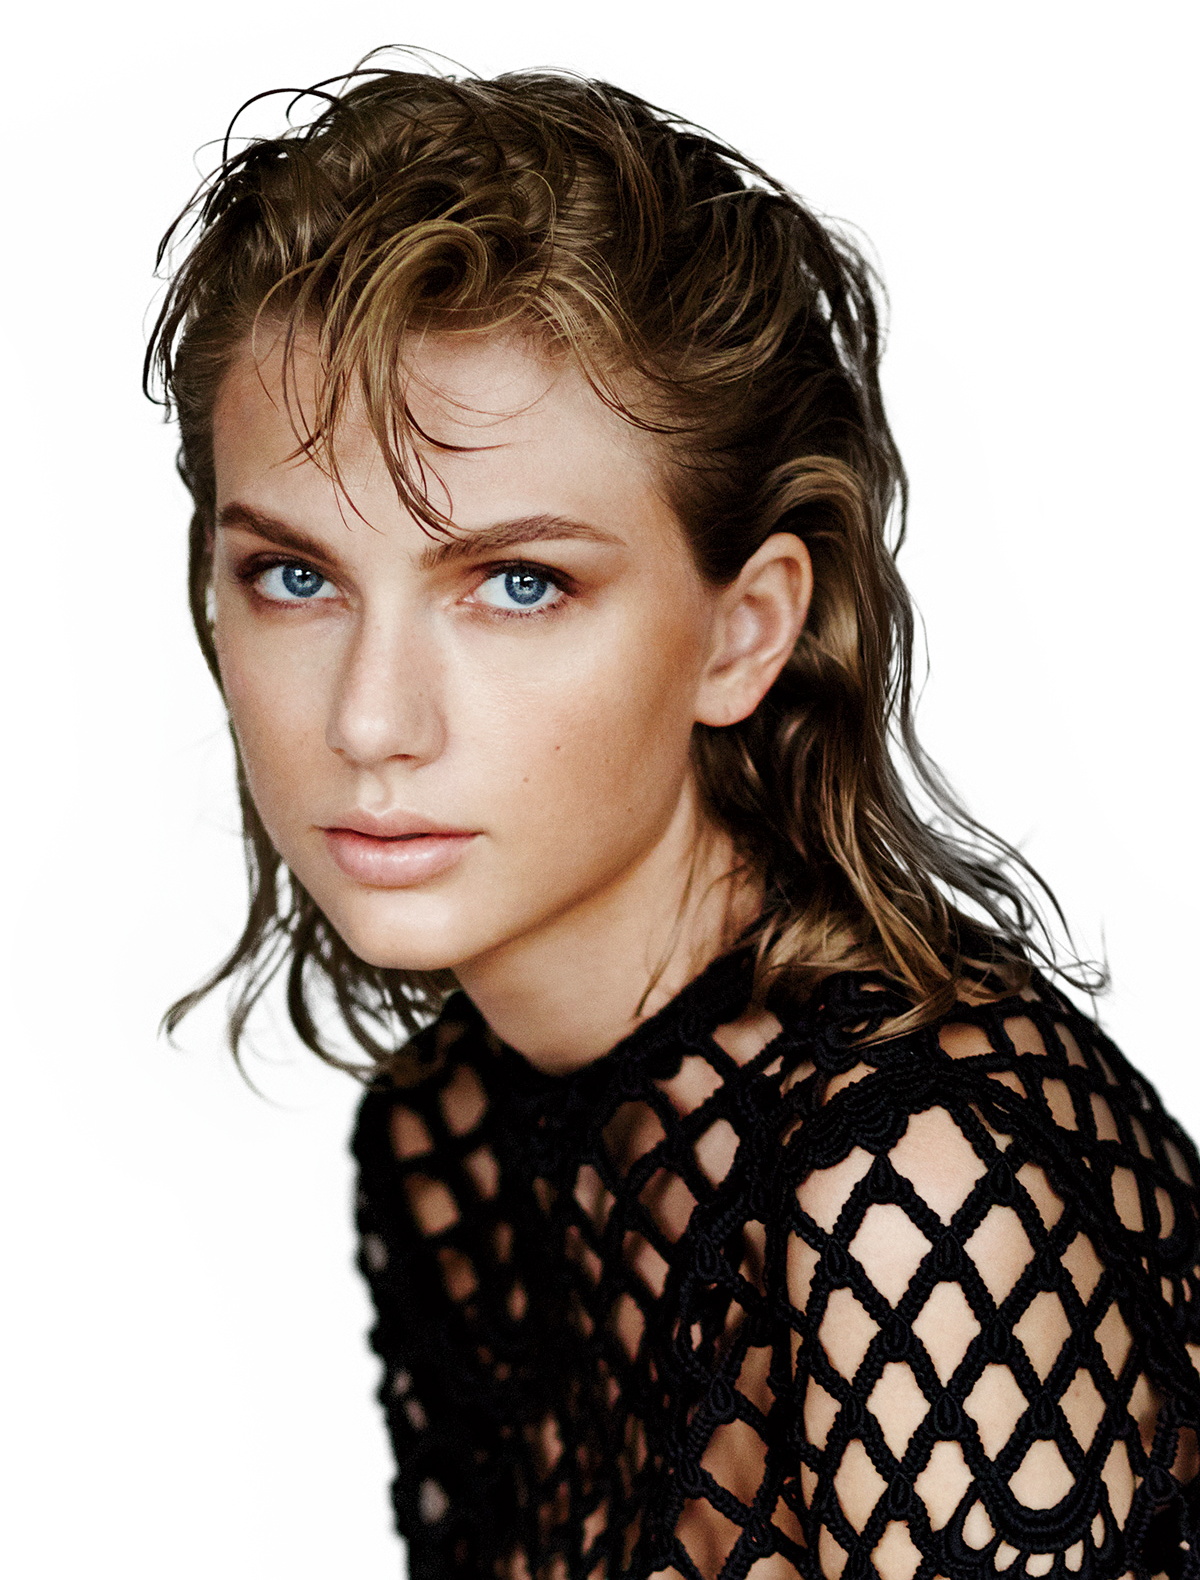 Taylor Swift PNG by maarcopngs Taylor Swift PNG by maarcopngs - Taylor Swift PNG